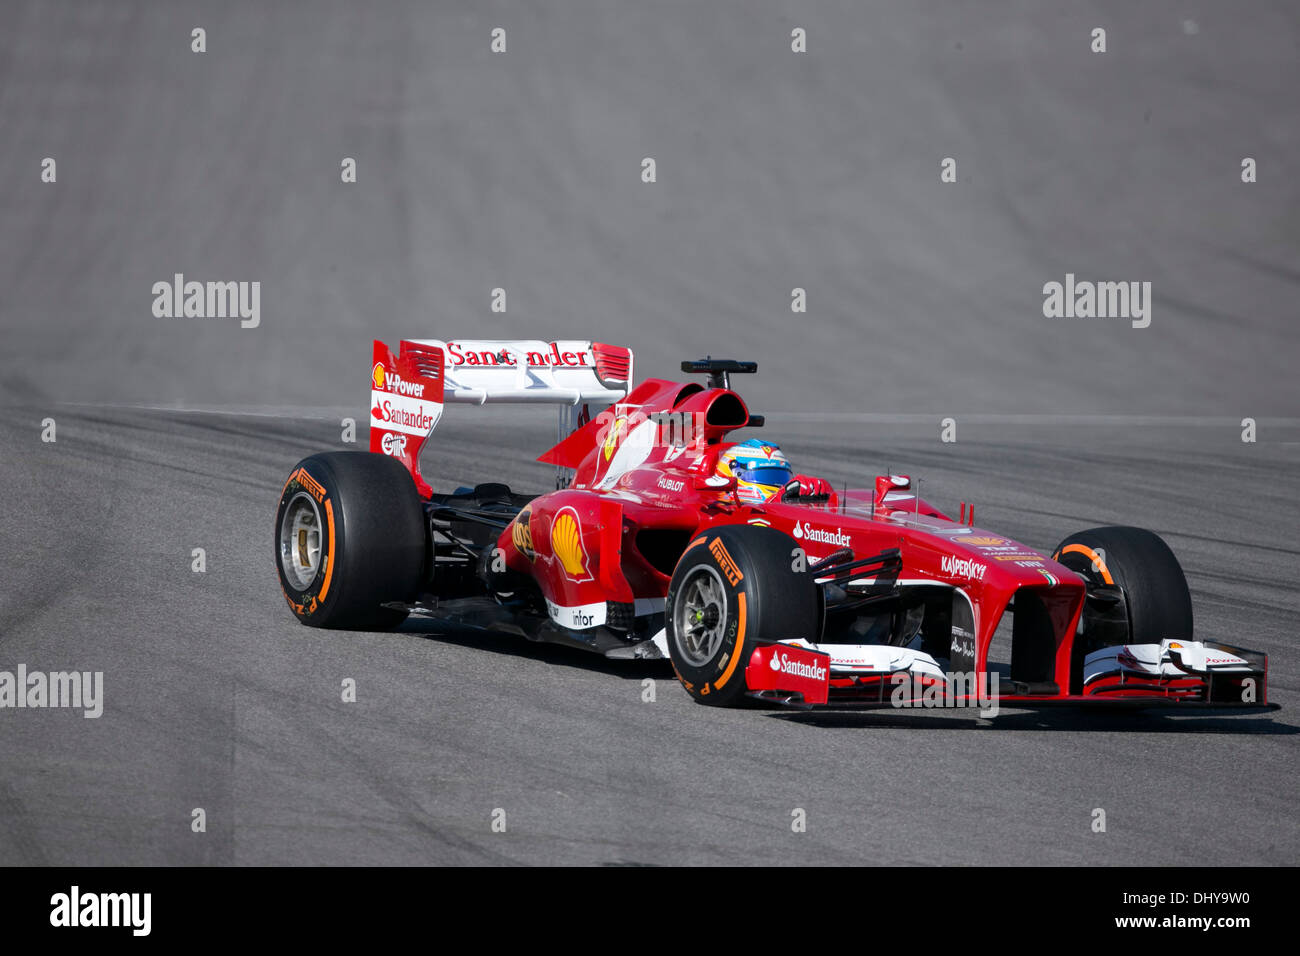 F1 driver during practice run for the United States Grand Prix at the Circuit of the Americas track near Austin Texas - Stock Image